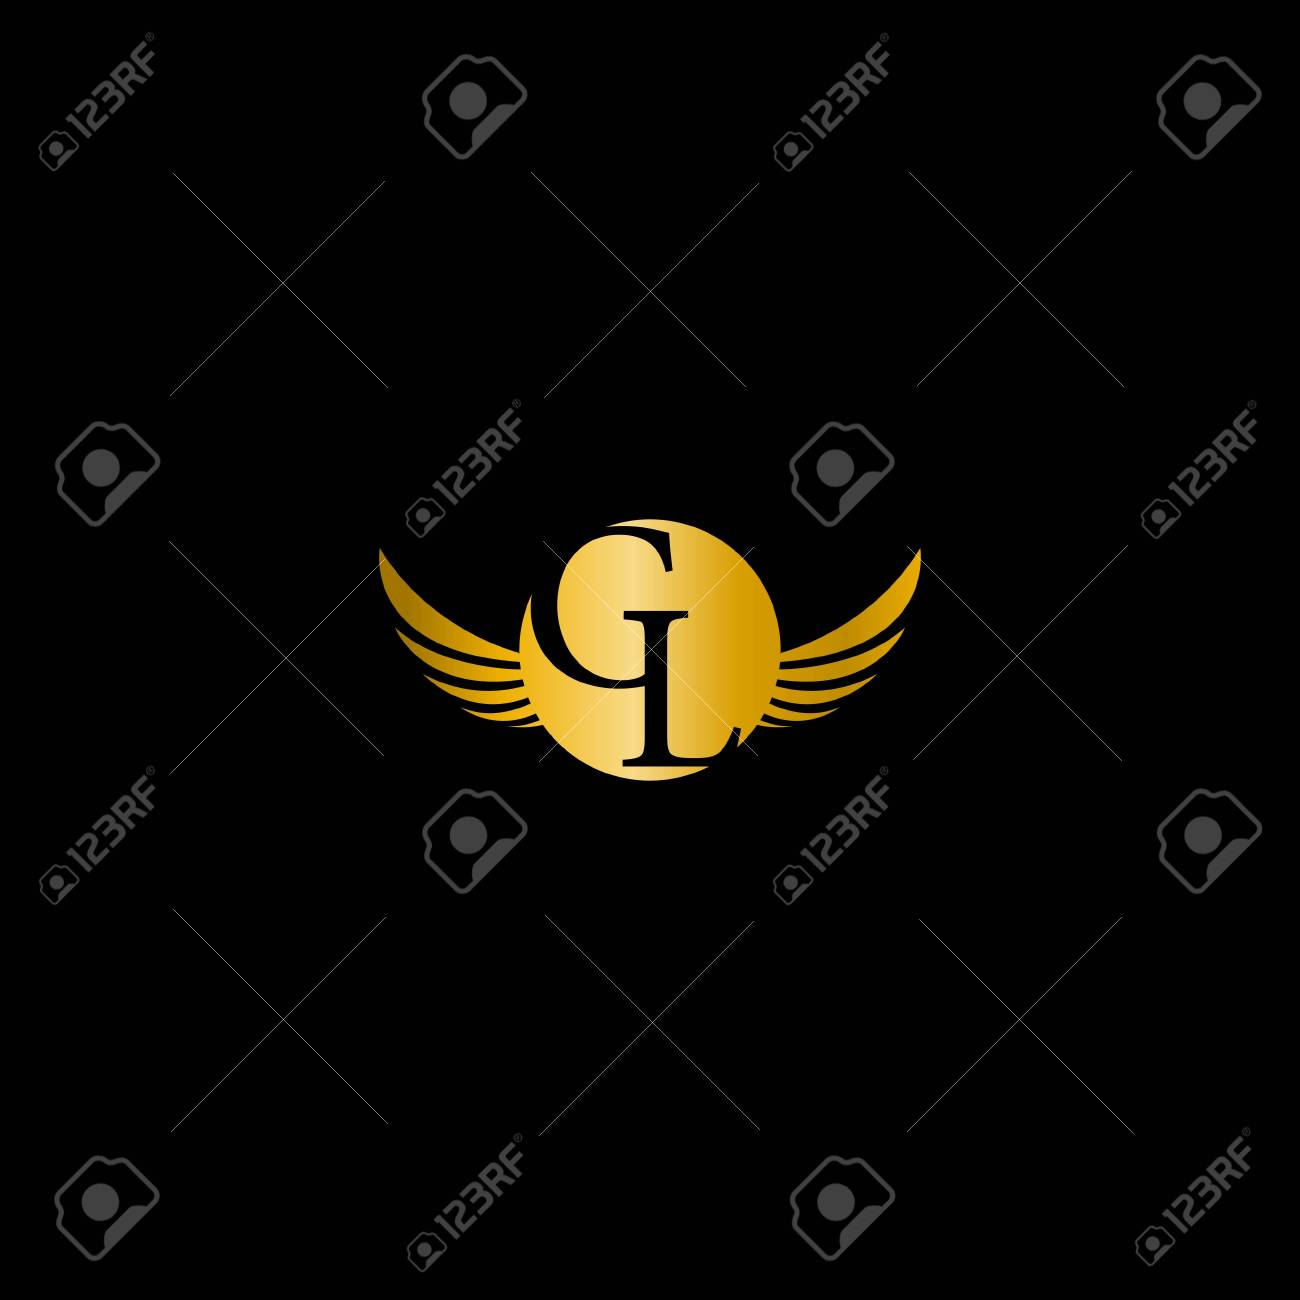 Gl Letter With Wing On Gold Color Logo Design Vector